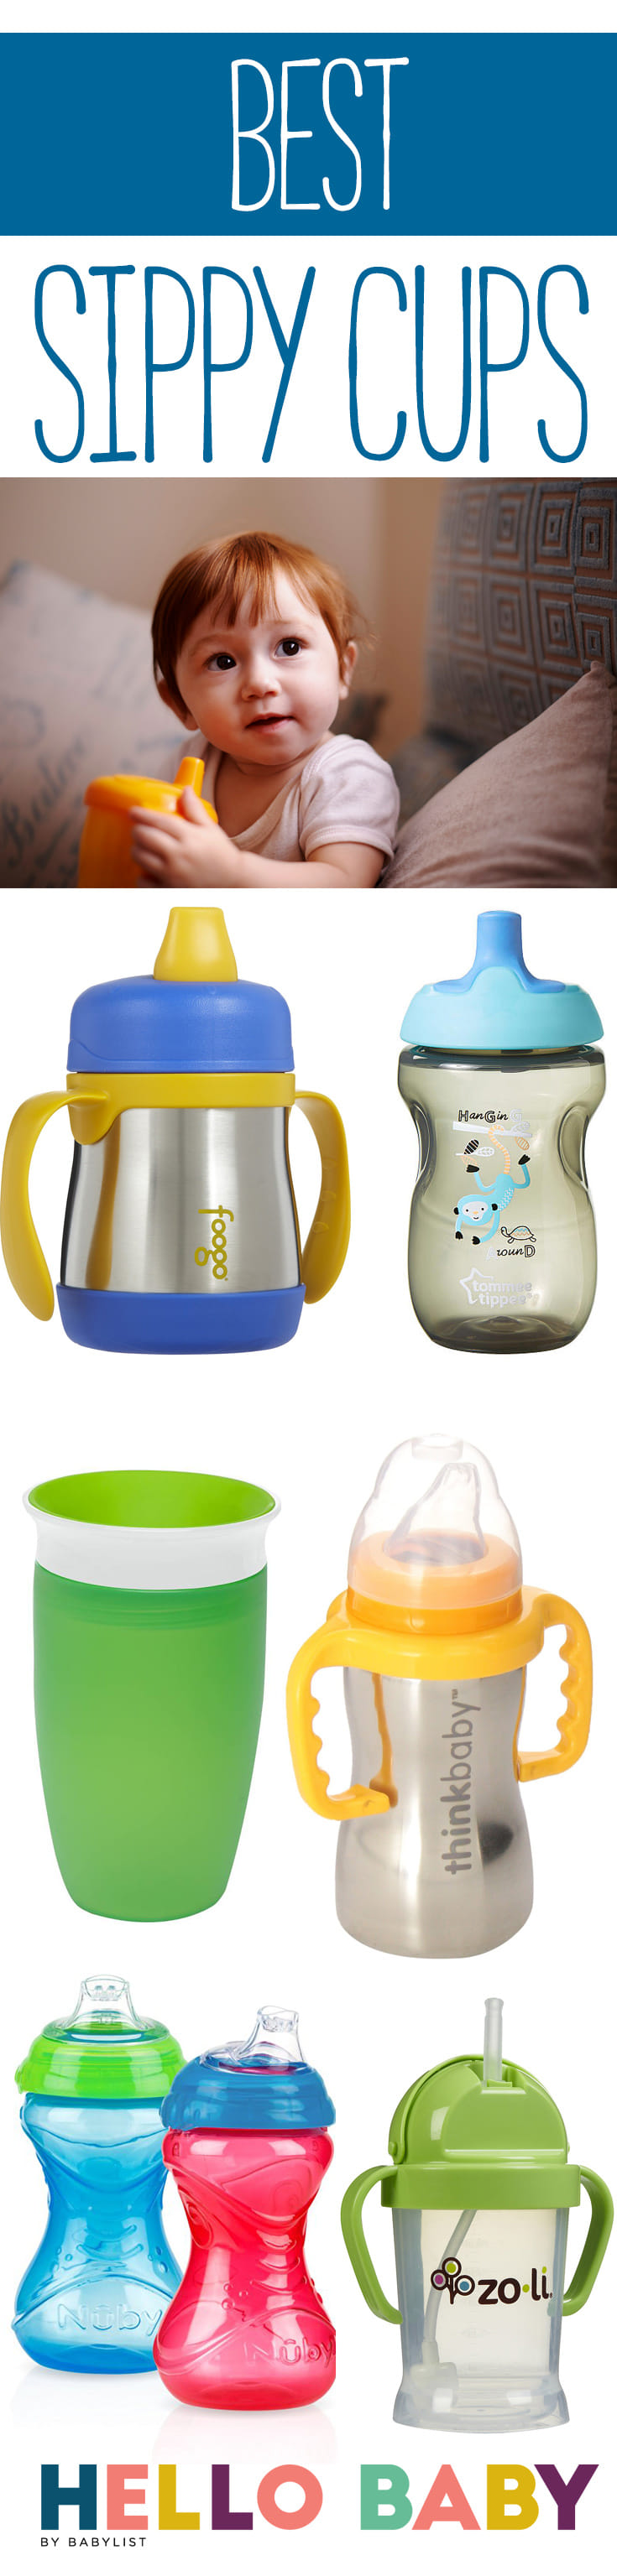 There comes a time in every baby's life when it's time to go from breast or bottle to a cup. That's when the sippy cup becomes your new BFF.